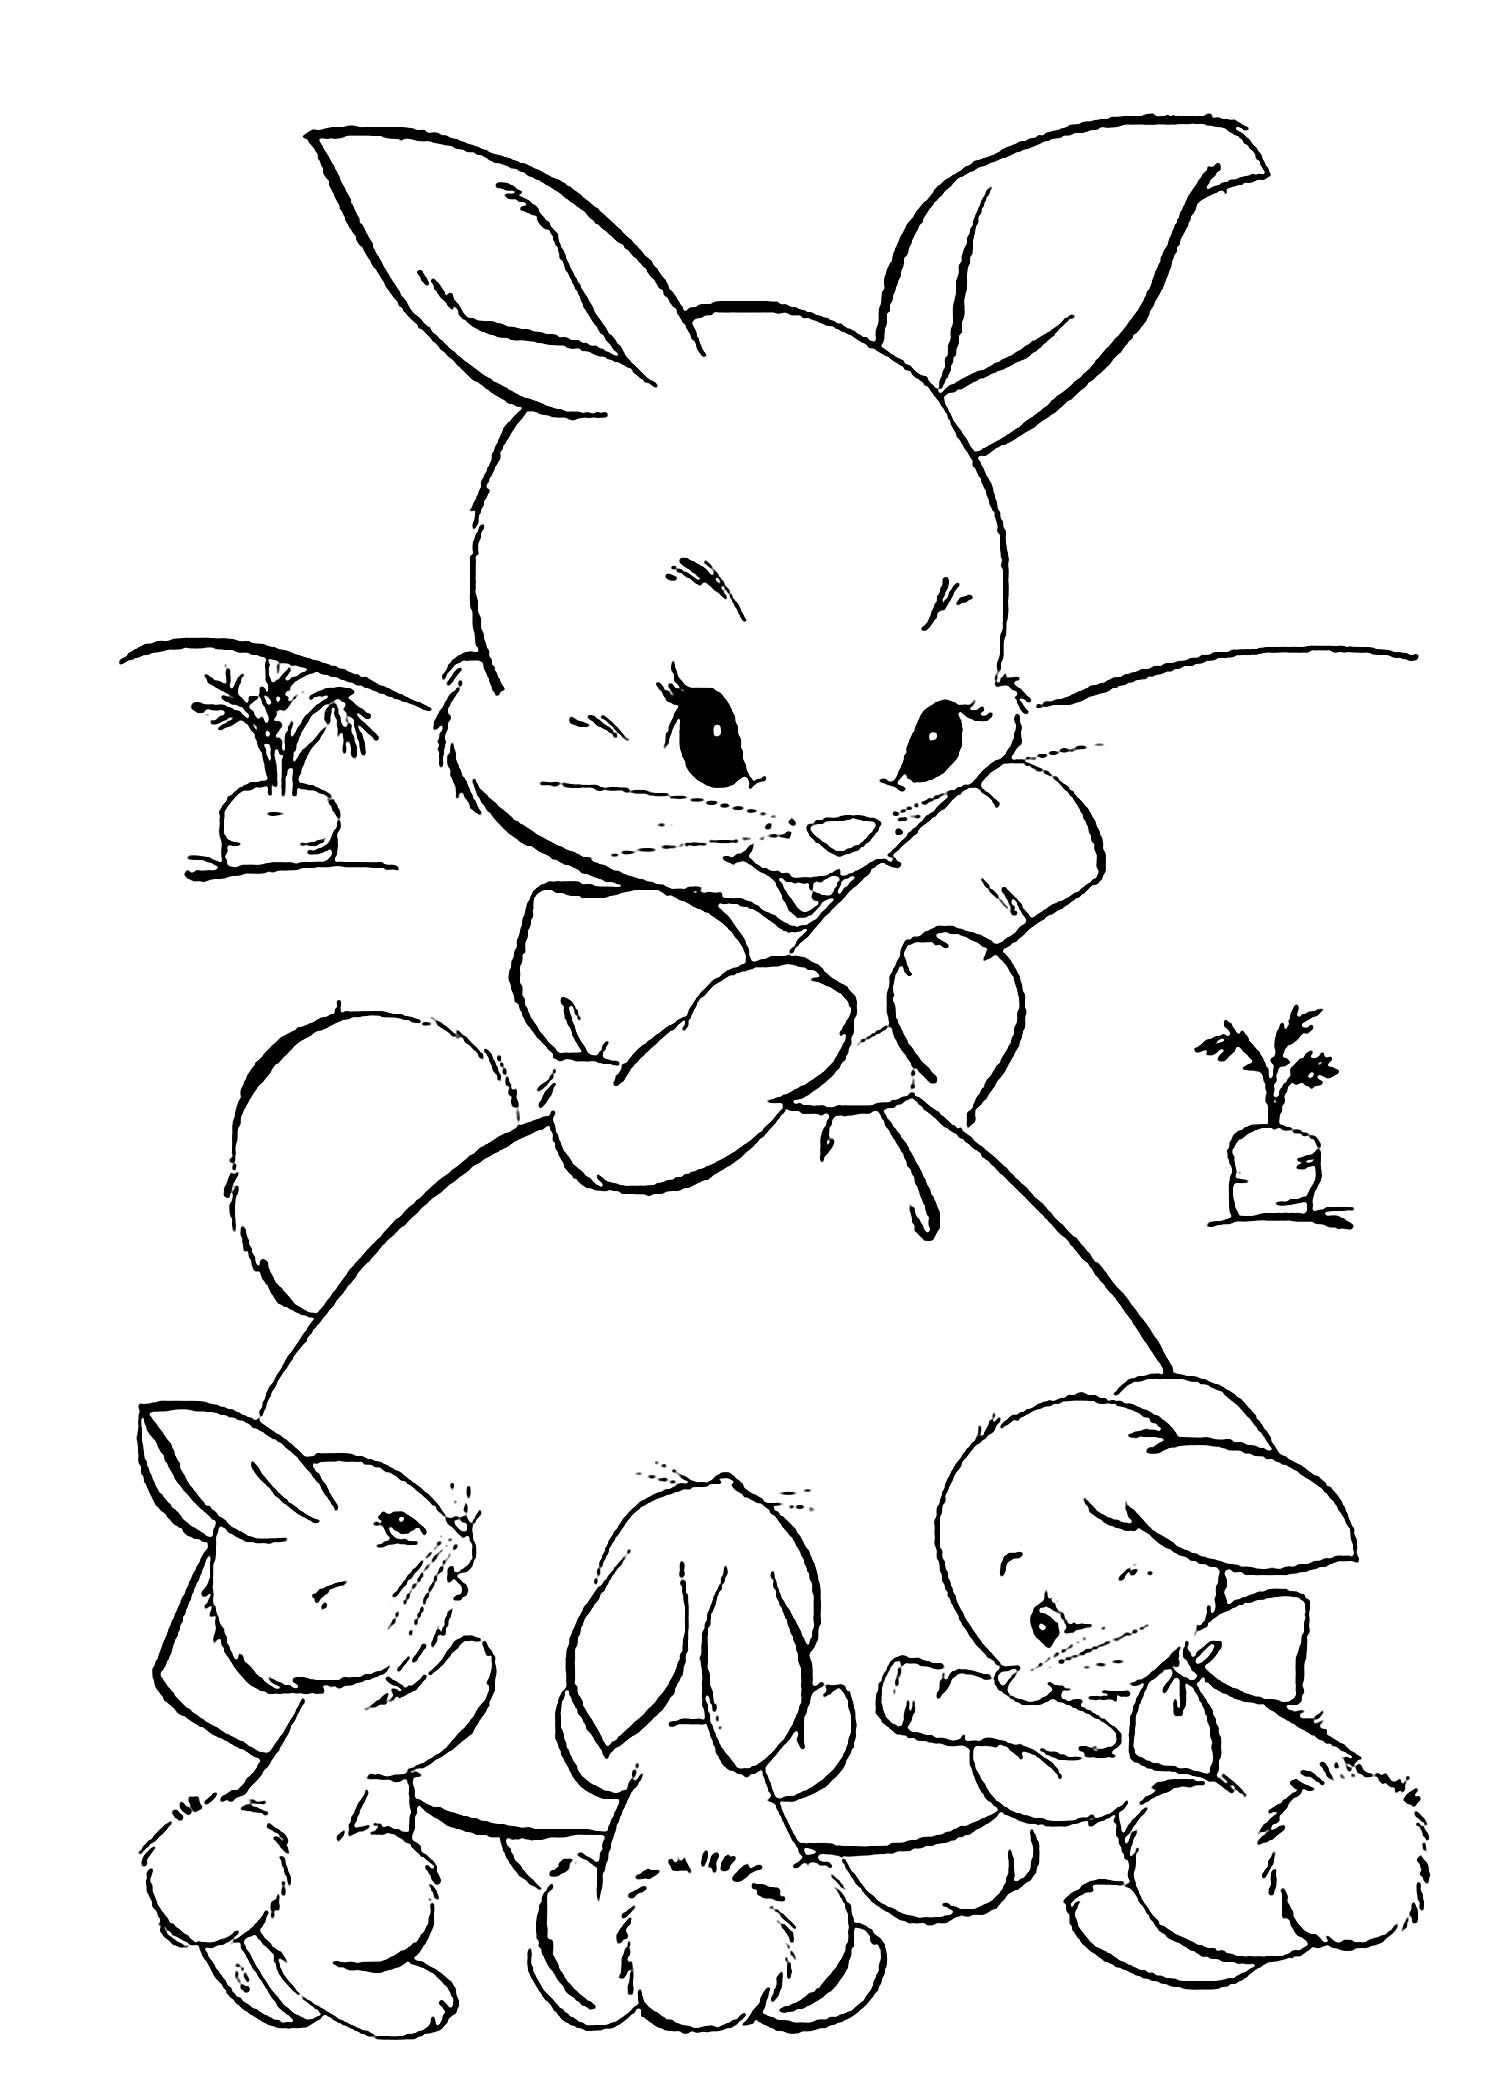 Baby Bunny Coloring Pages Rabbit Free To Color For Kids Children Mermaid Riding A Unicorn Printable Ten C In 2020 Ostern Zeichnung Basteln Ideen Ostern Osterhase Malen